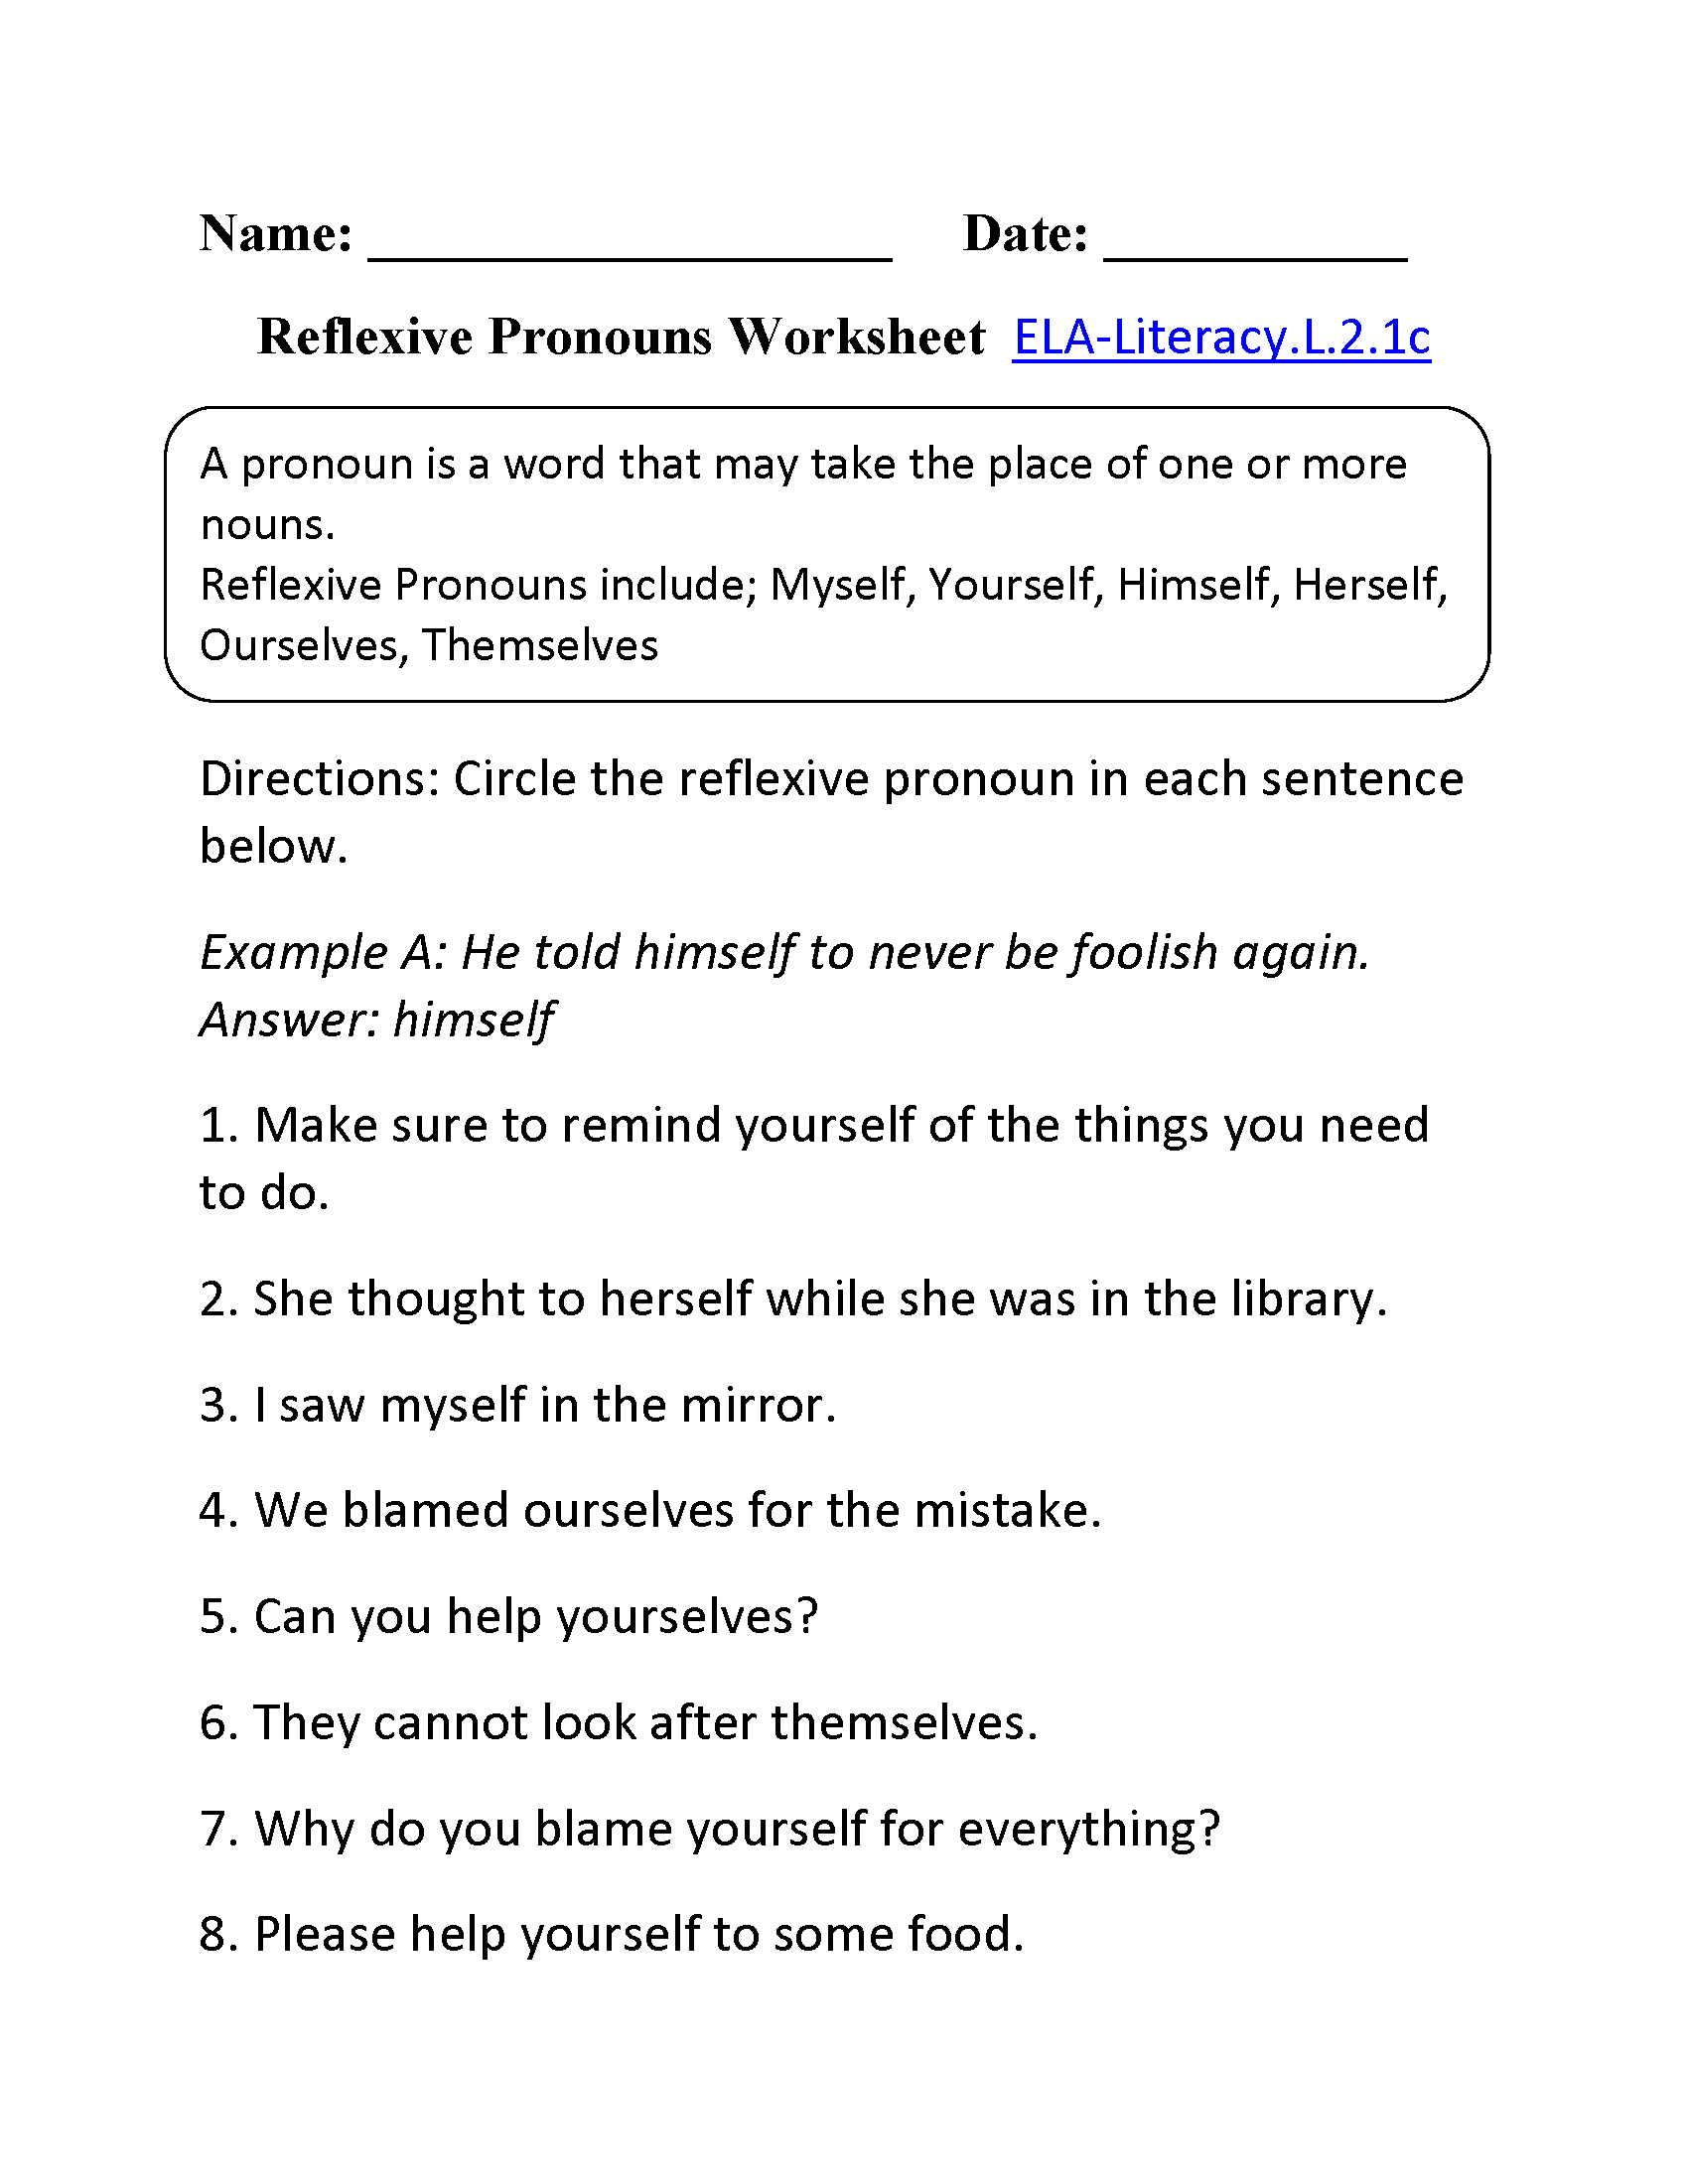 Reflexive Pronouns Worksheet 1 Ela Literacy L 2 1c